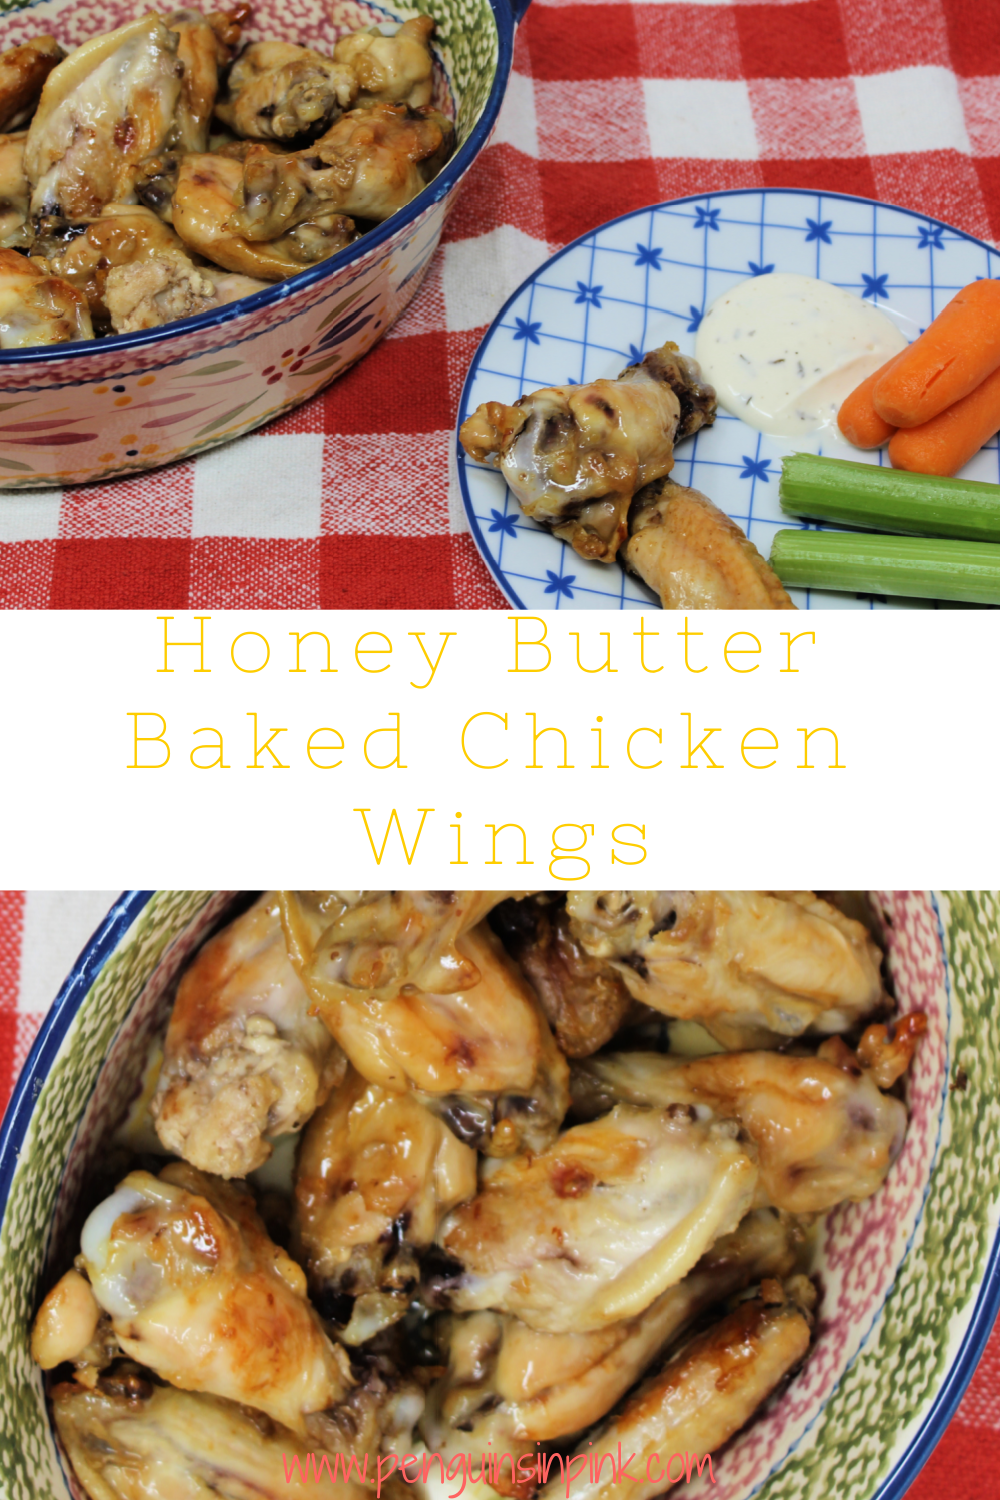 Honey and butter combine to smother baked chicken wings creating a delicious sweet baked chicken wings. Perfect for kids to eat and make!